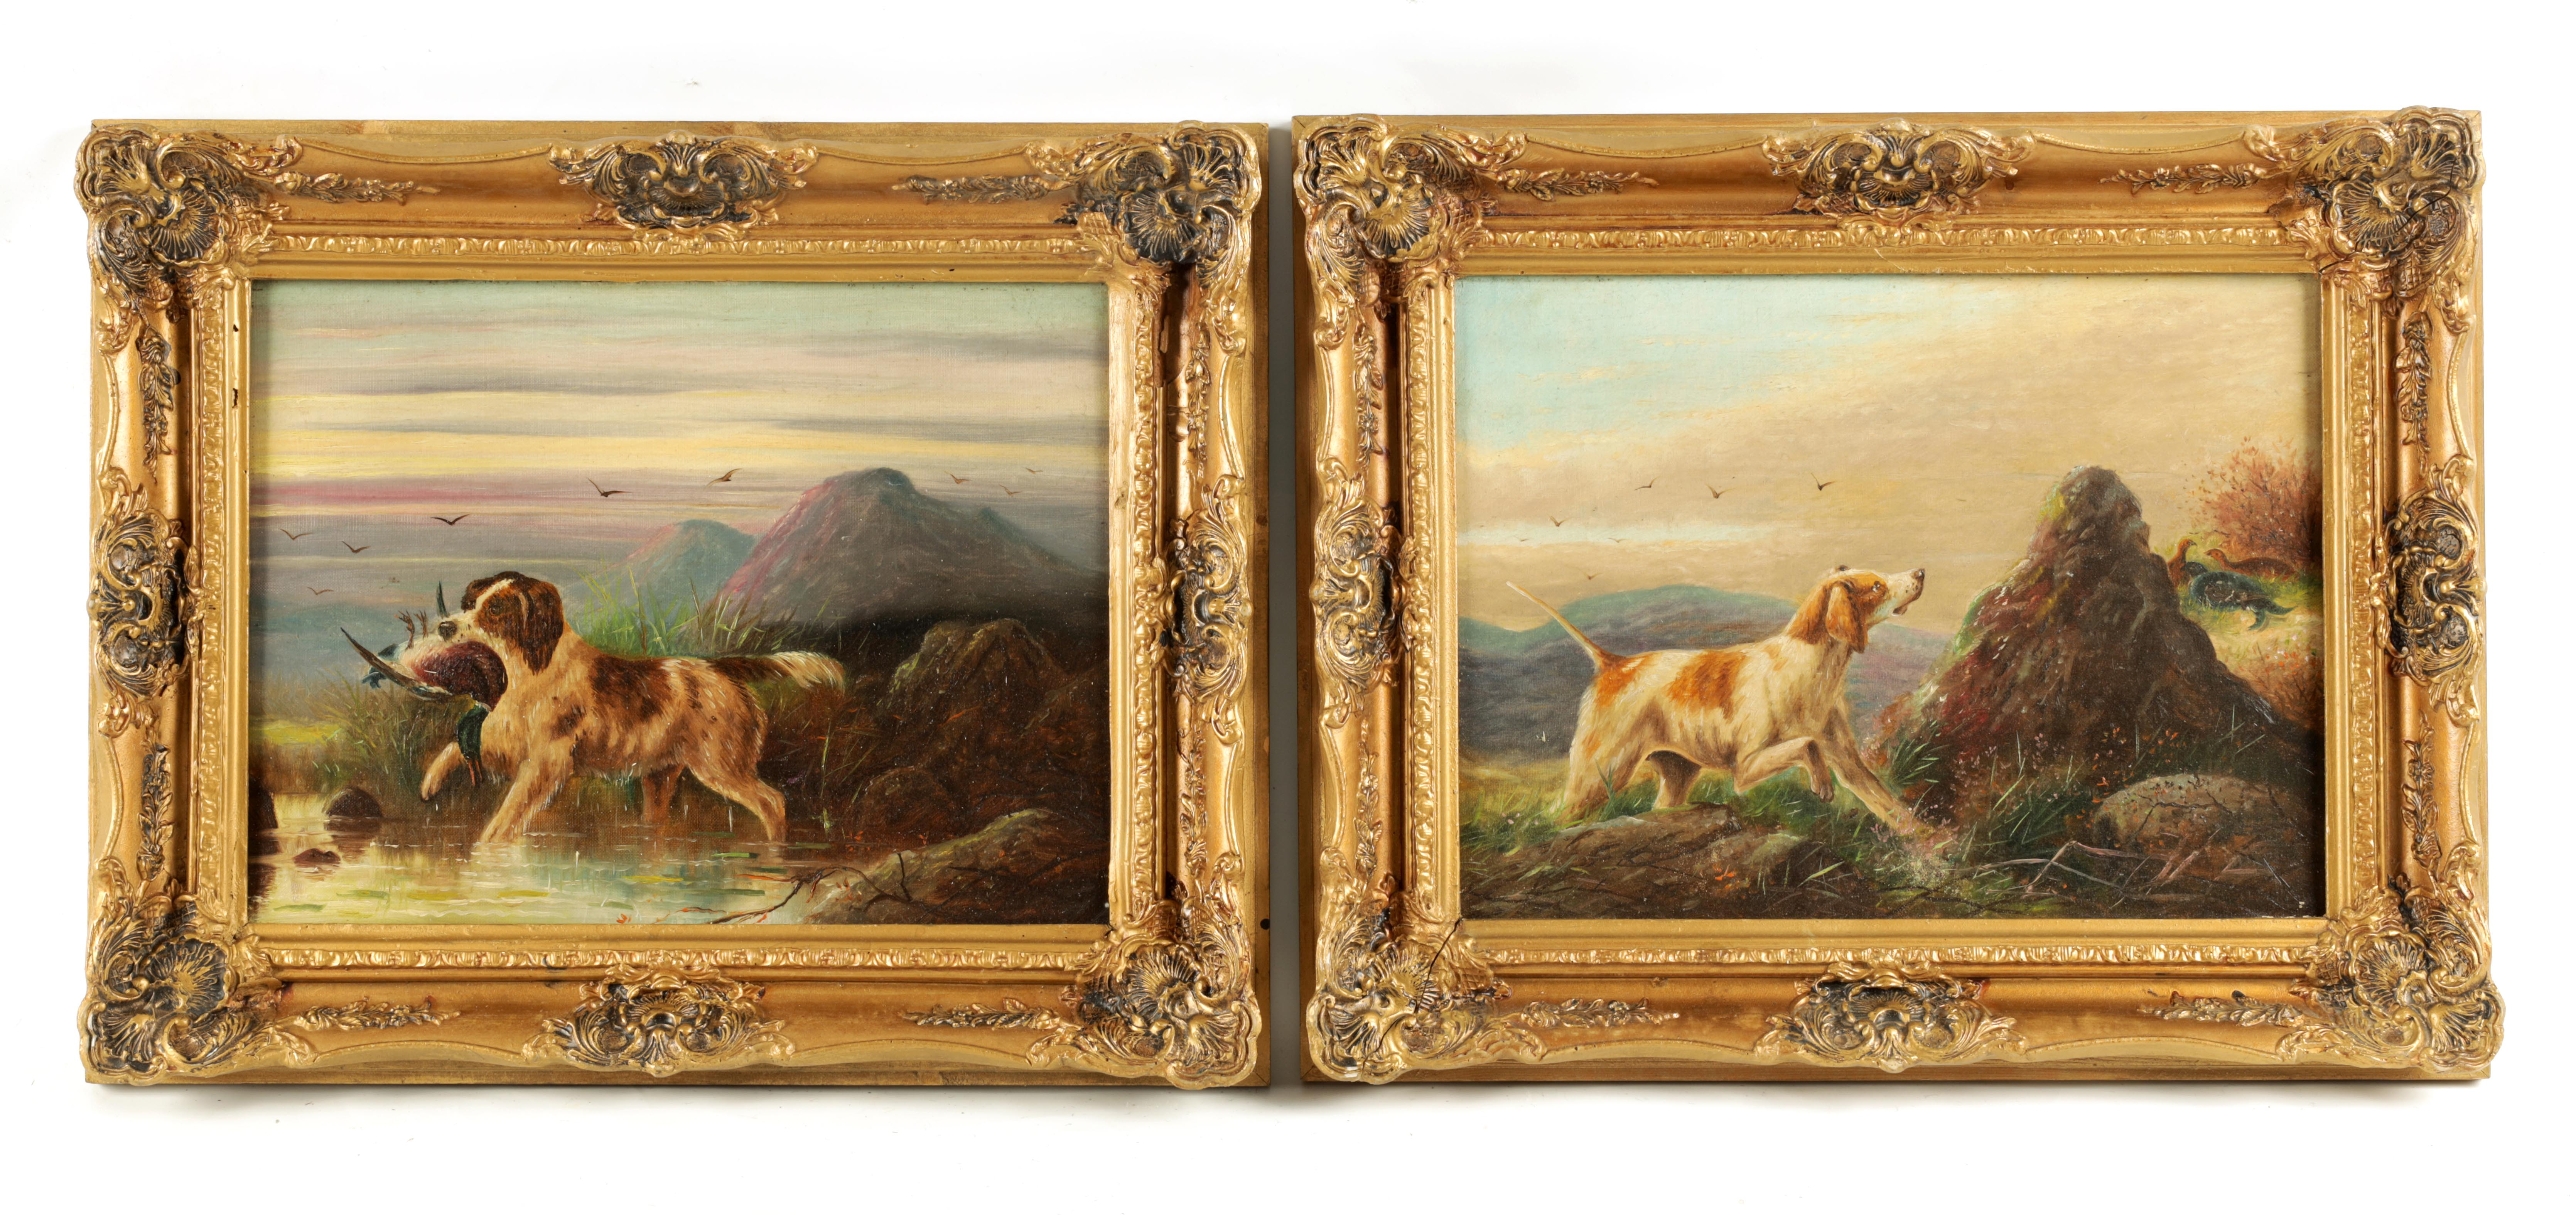 JAMES PRICE A PAIR OF EARLY 20TH CENTURY OILS ON CANVAS titled and signed on reverse 'Spaniel and